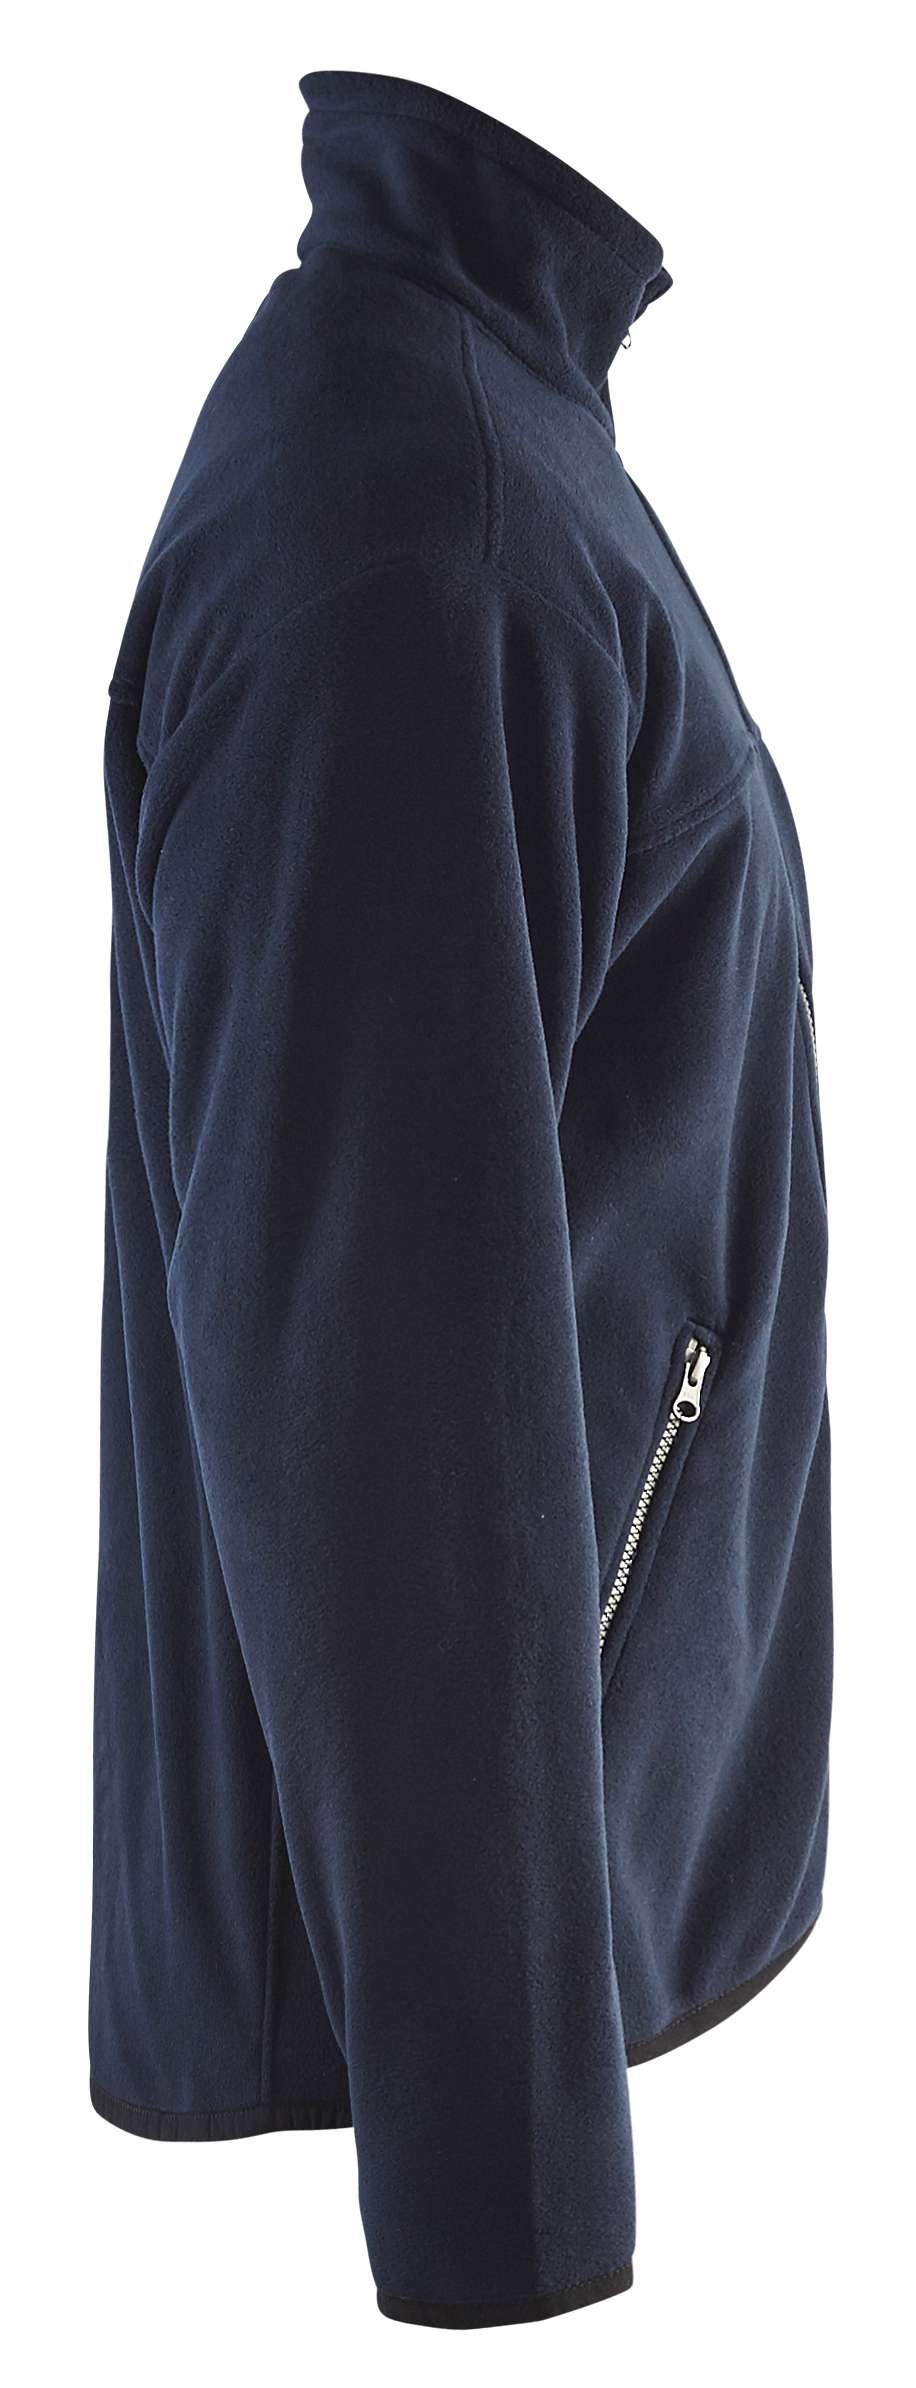 Blaklader Fleece vesten 48302510 marineblauw(8900)